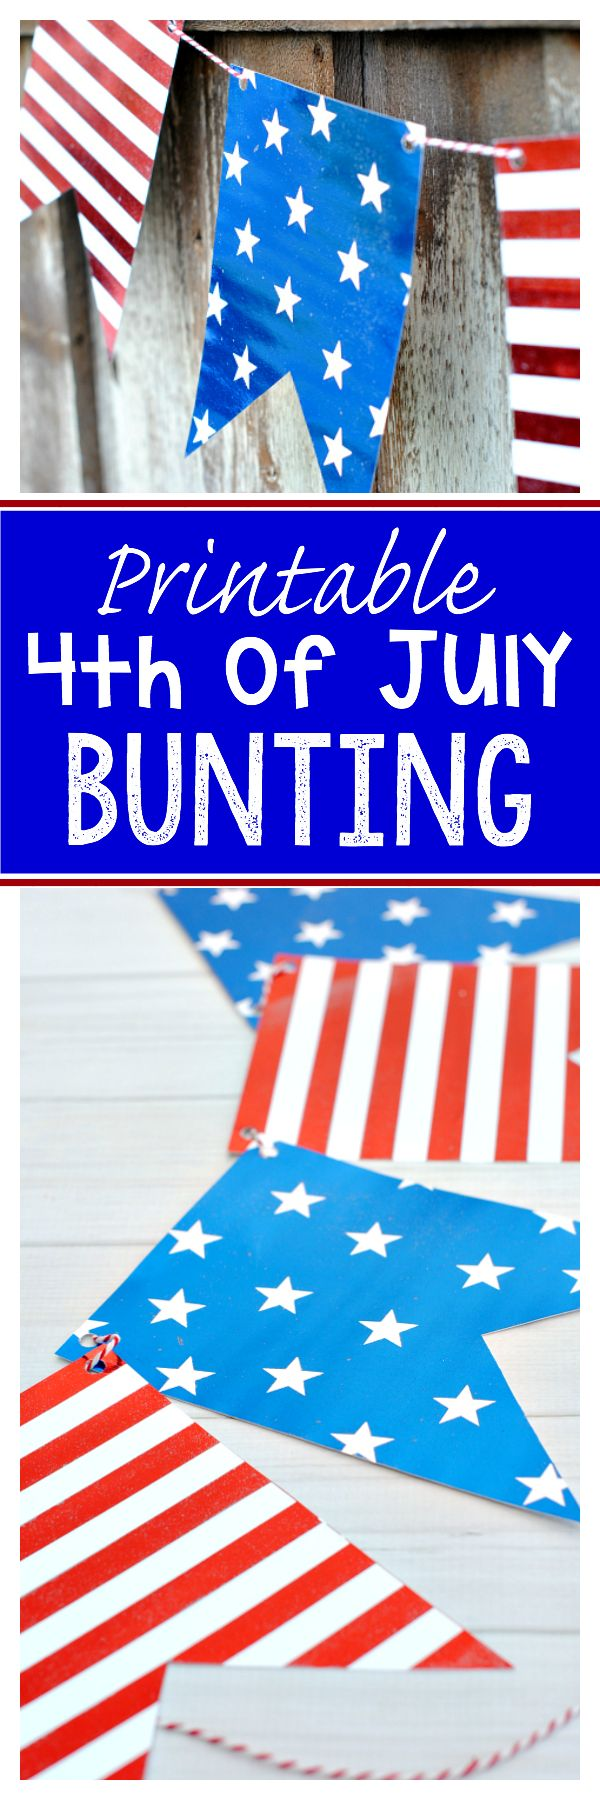 Printable Patriotic Bunting (and see what you can do with foil!)